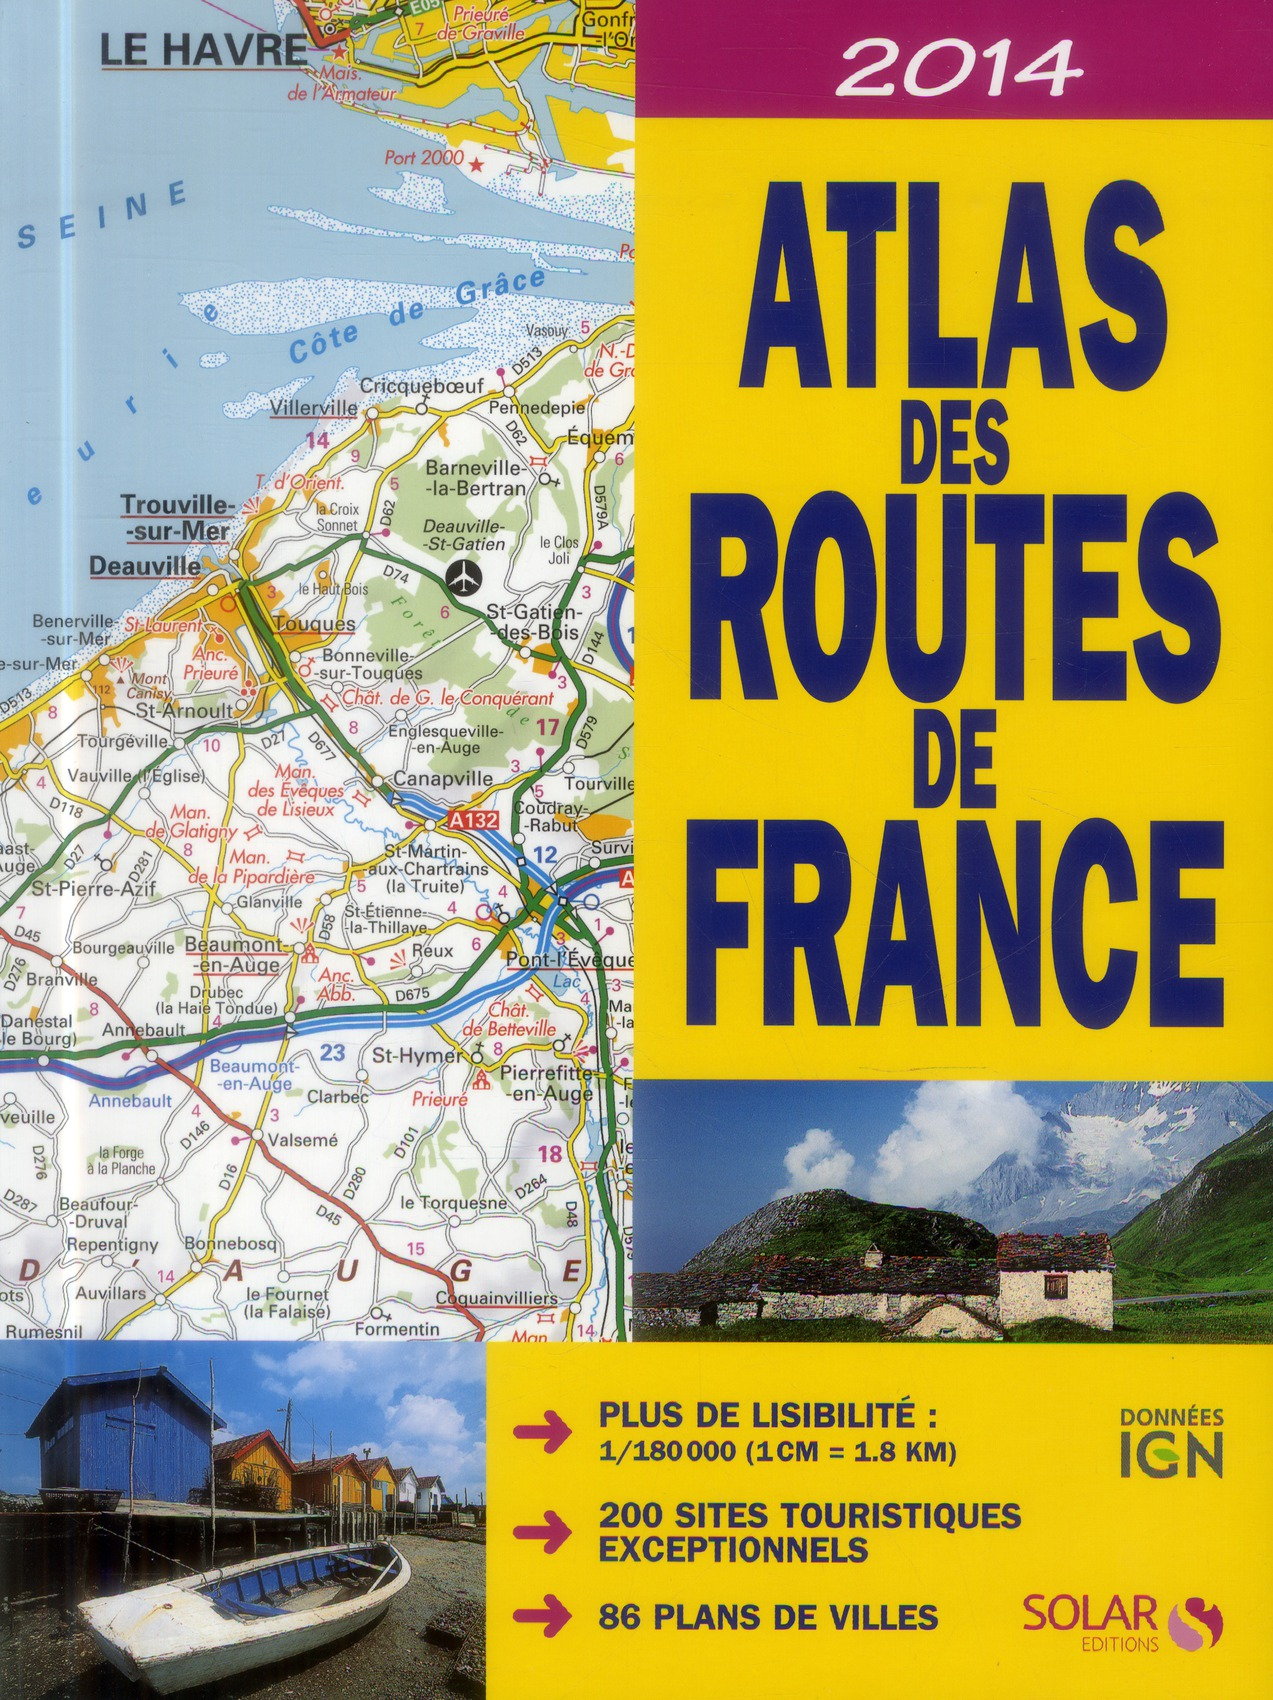 ATLAS DES ROUTES 2014